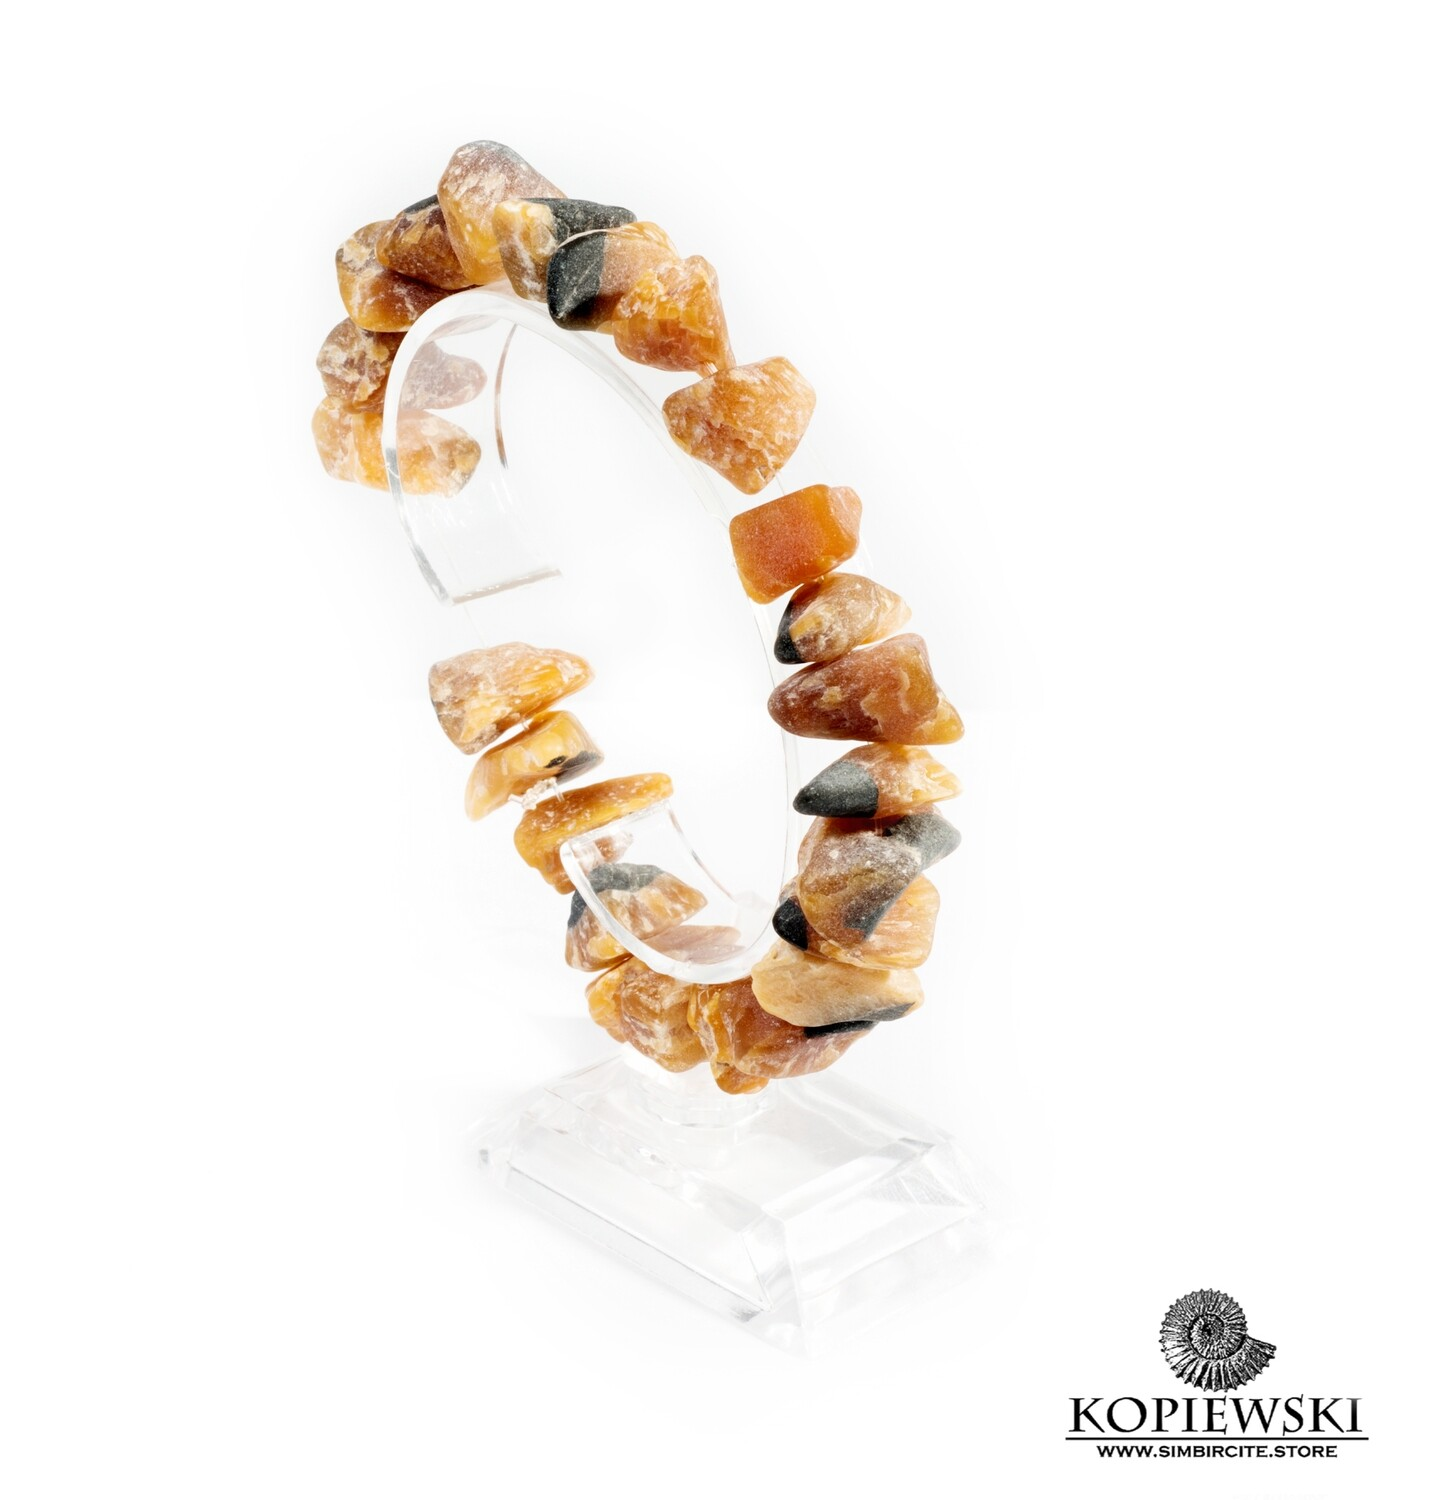 Bracelet made of raw Simbircite in the assortment